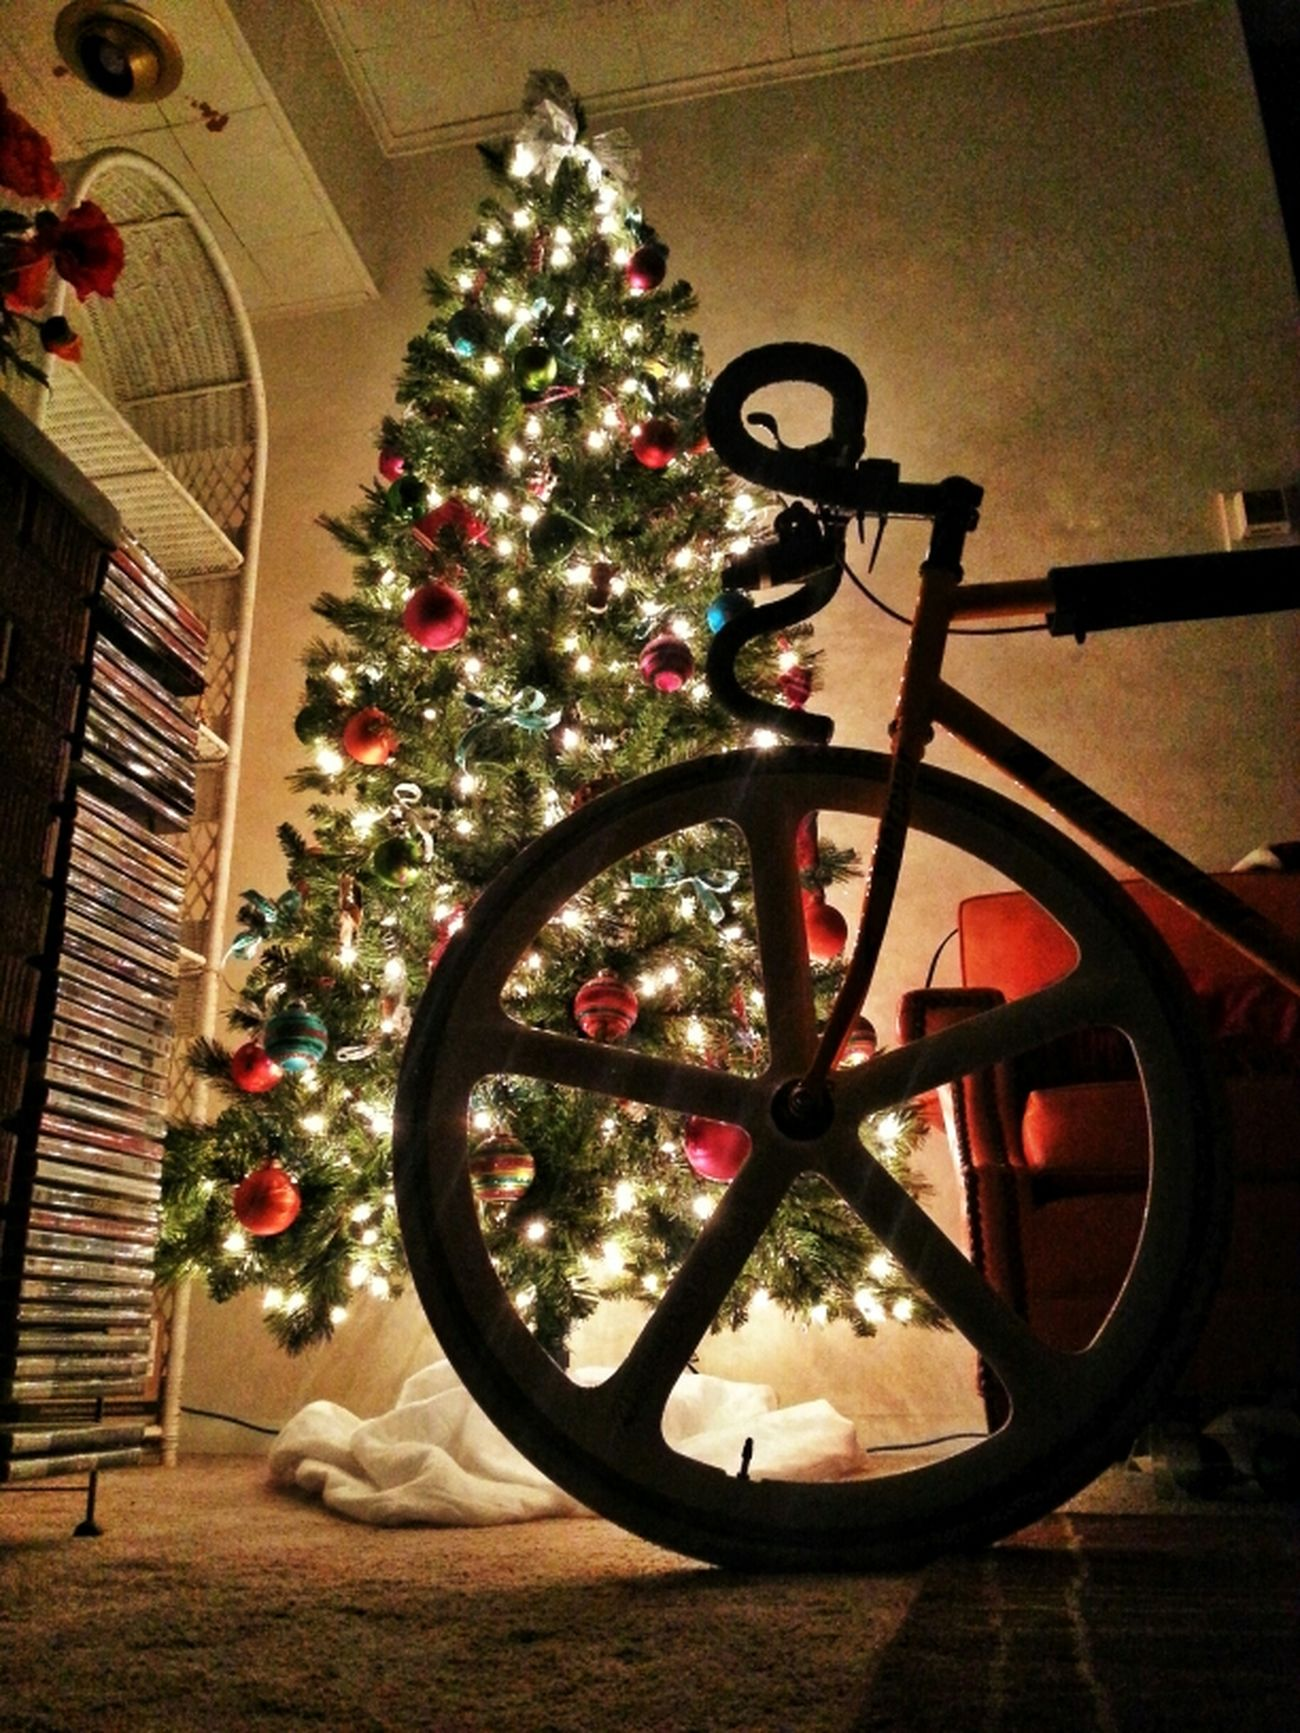 Have a safe and wonderful holiday! Bike Bicycle Christmas Christmas Tree Christmas Lights Fixed Gear Fixie Mercier Aerospoke Dropbars Kilo Tt Festivus